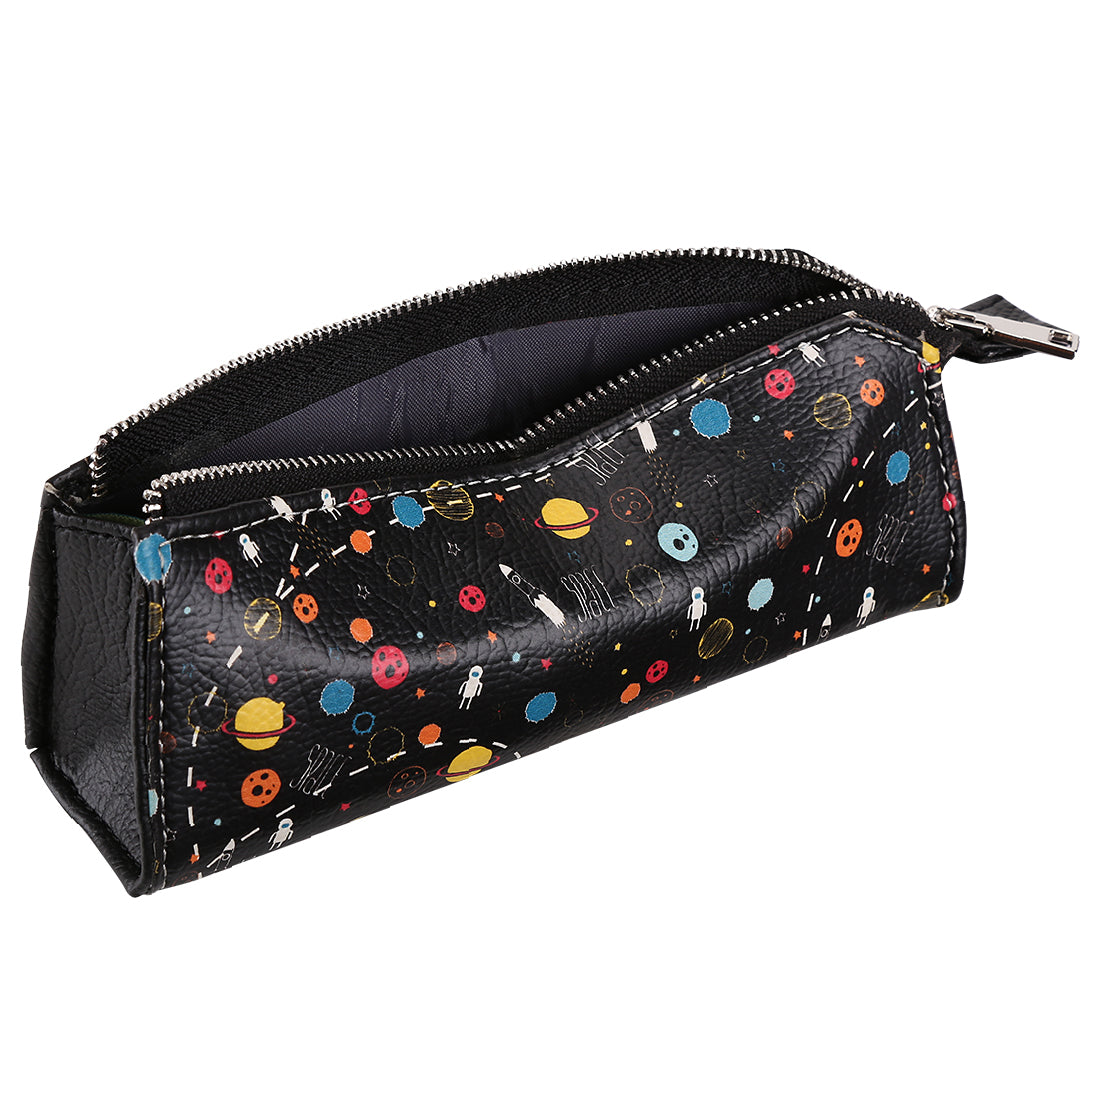 In My Space Multi-Purpose Triangle Pouch